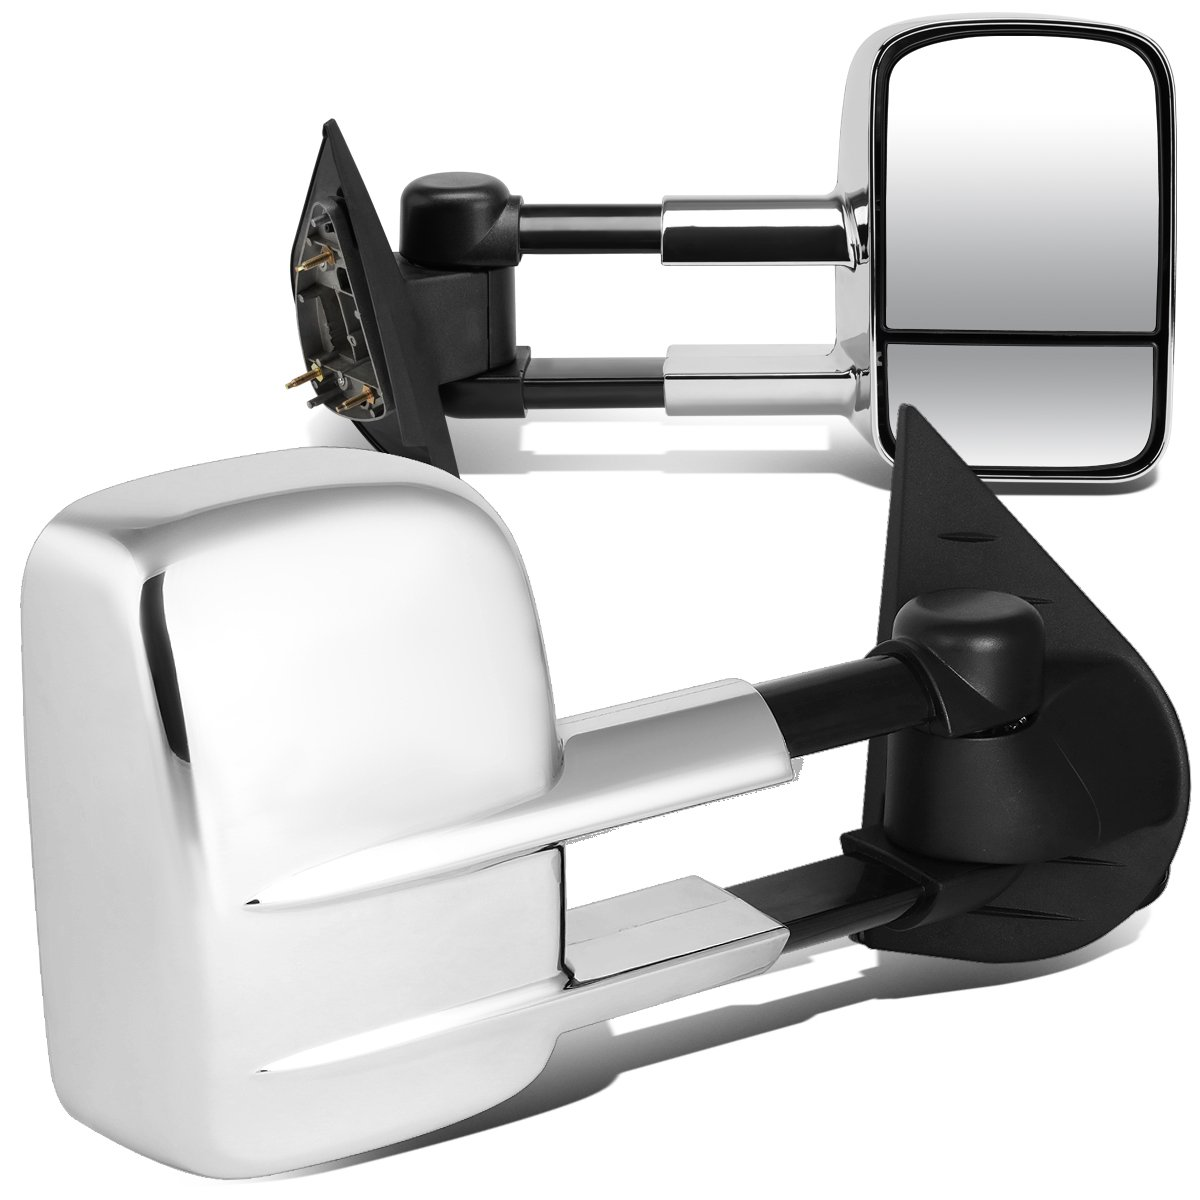 For Silverado/Sierra GMT900 Pair of Telescopic Extended Arm Rear View Manual Folding Towing Side Mirror (Chrome) by Auto Dynasty